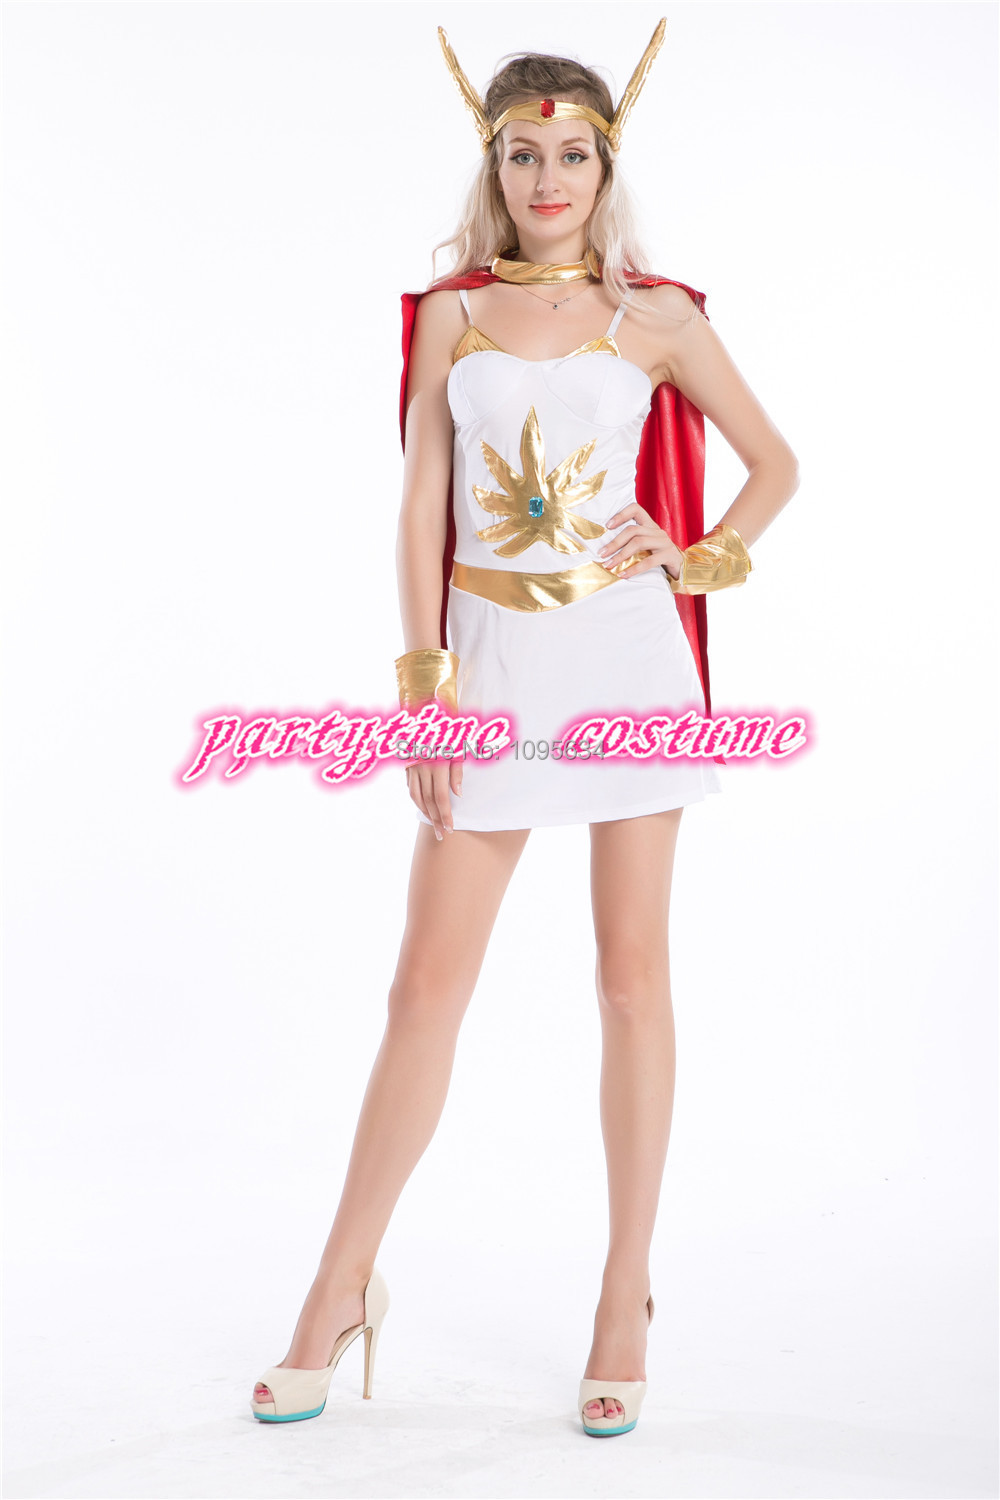 Aliexpress.com  Buy Free Shipping Ladies She Ra Costume Deluxe 80u0027s Superhero Shera Fancy Dress M XL 3XL from Reliable dresses leopard suppliers on ...  sc 1 st  AliExpress.com & Aliexpress.com : Buy Free Shipping Ladies She Ra Costume Deluxe 80u0027s ...